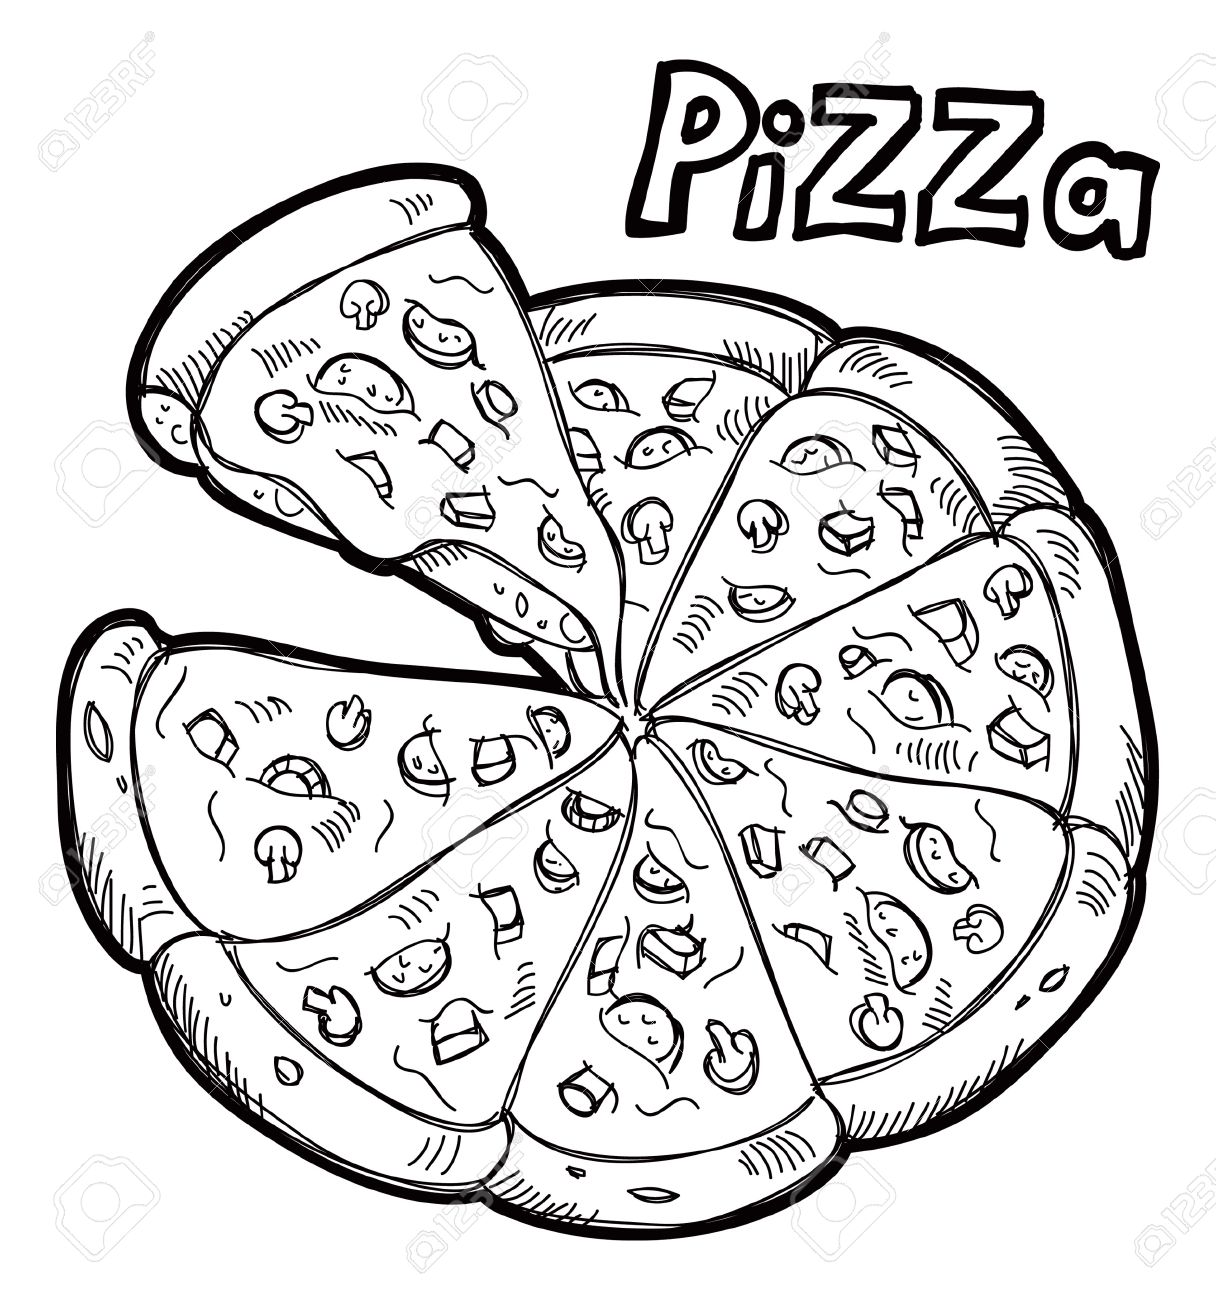 Free clipart pizza black and white svg freeuse stock Best Pizza Clipart Black And White #6397 - Clipartion.com svg freeuse stock